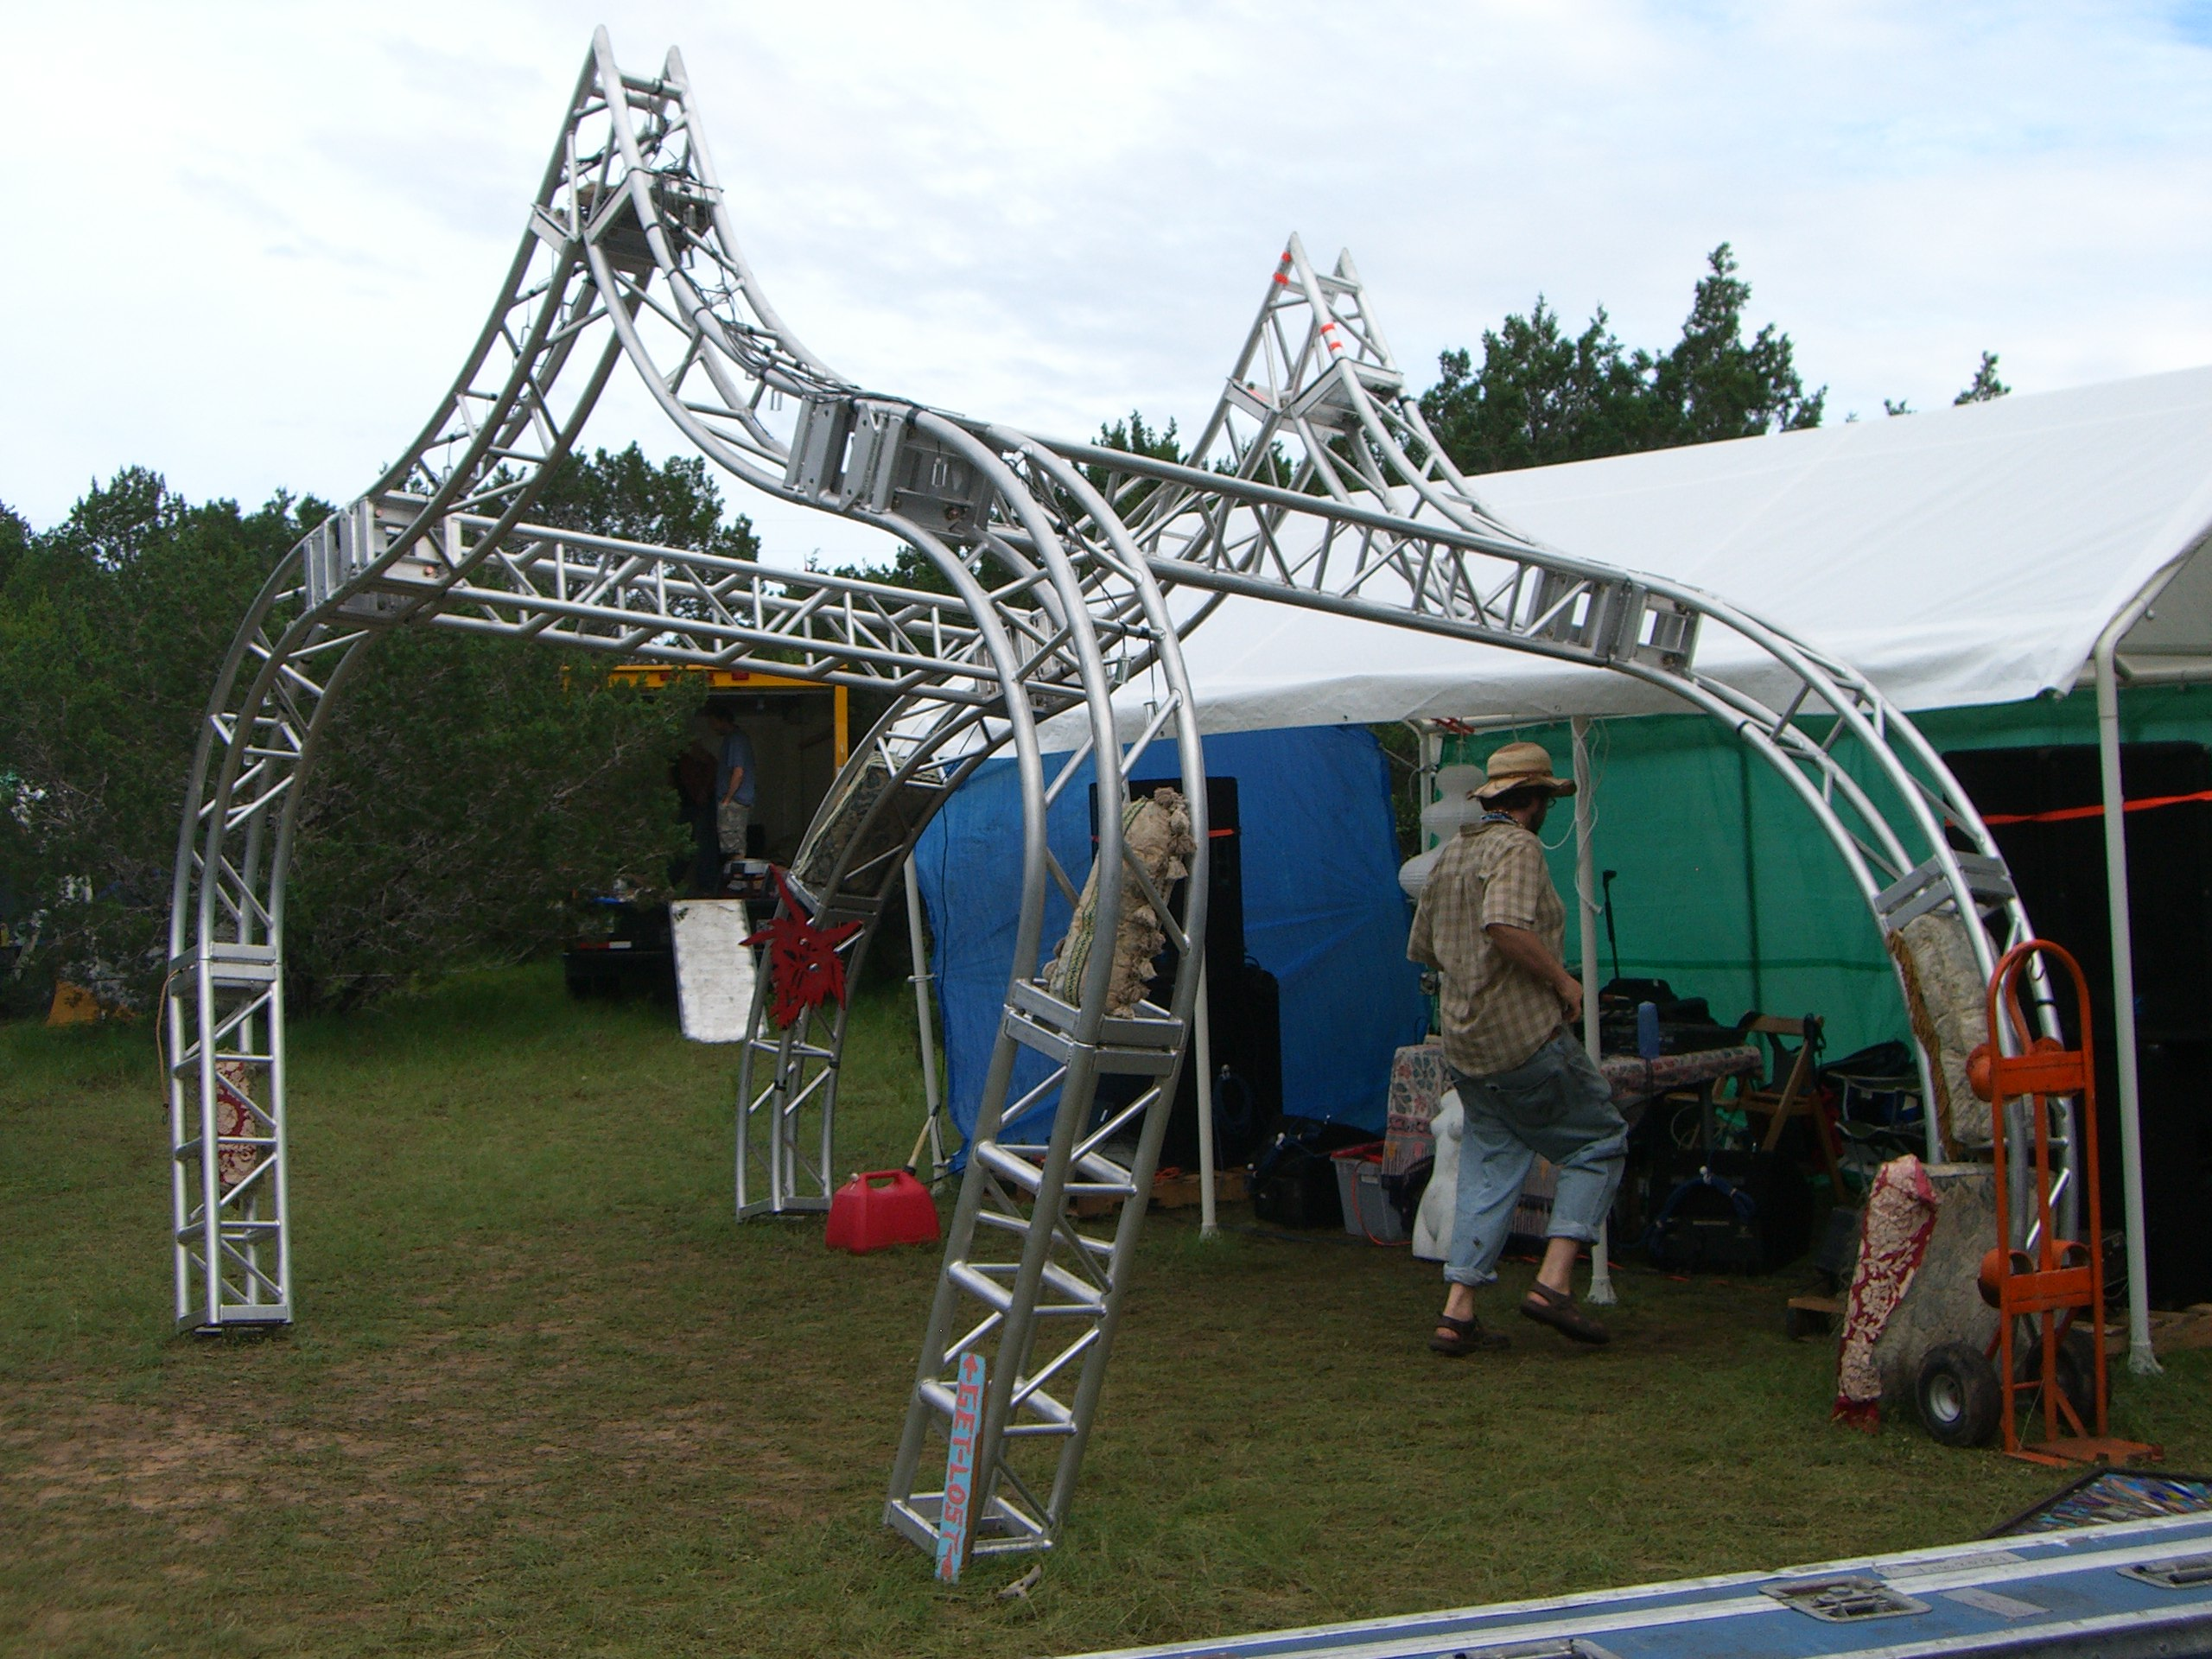 An onion dome-like structure at Get Lost camp at Burning Flipside 2007